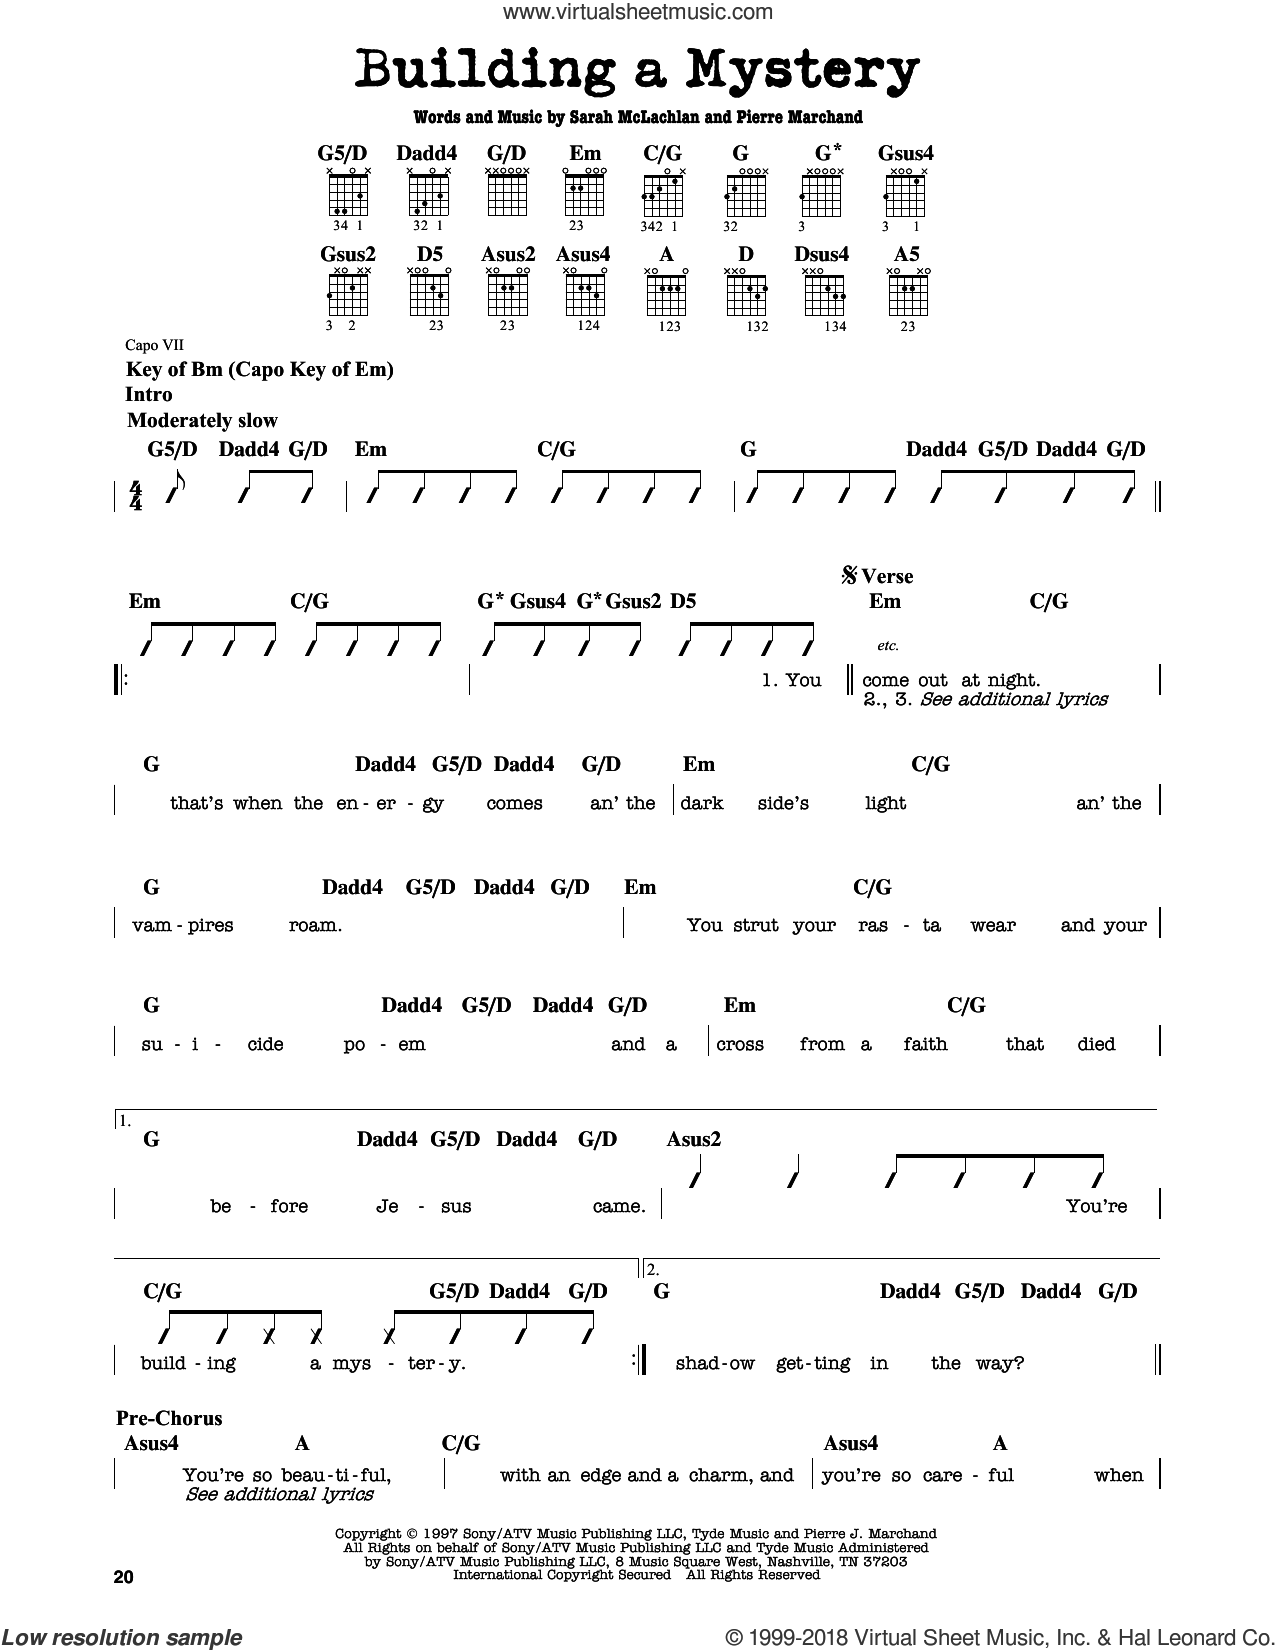 Building A Mystery sheet music for guitar solo (lead sheet) by Sarah McLachlan and Pierre Marchand, classical score, intermediate guitar (lead sheet)